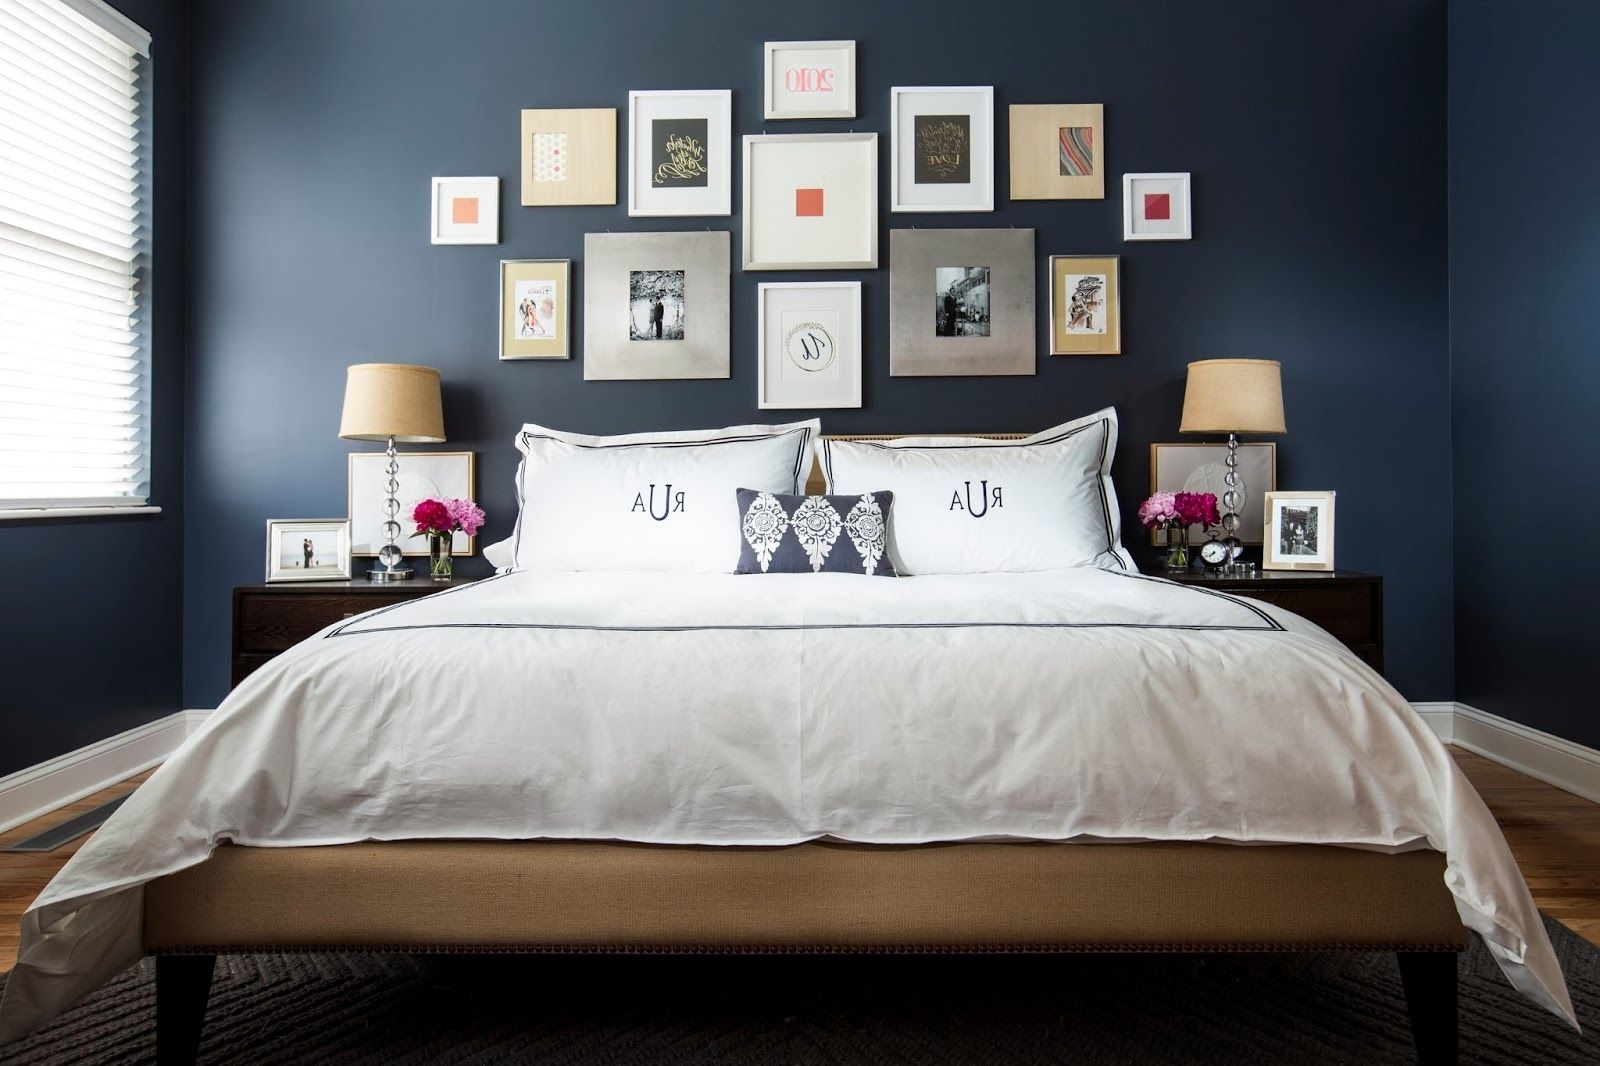 Explore Gallery Of Fabric Wall Art Above Bed 2 Of 15 Dark Blue Bedrooms Blue Bedroom Decor Blue Bedroom Walls